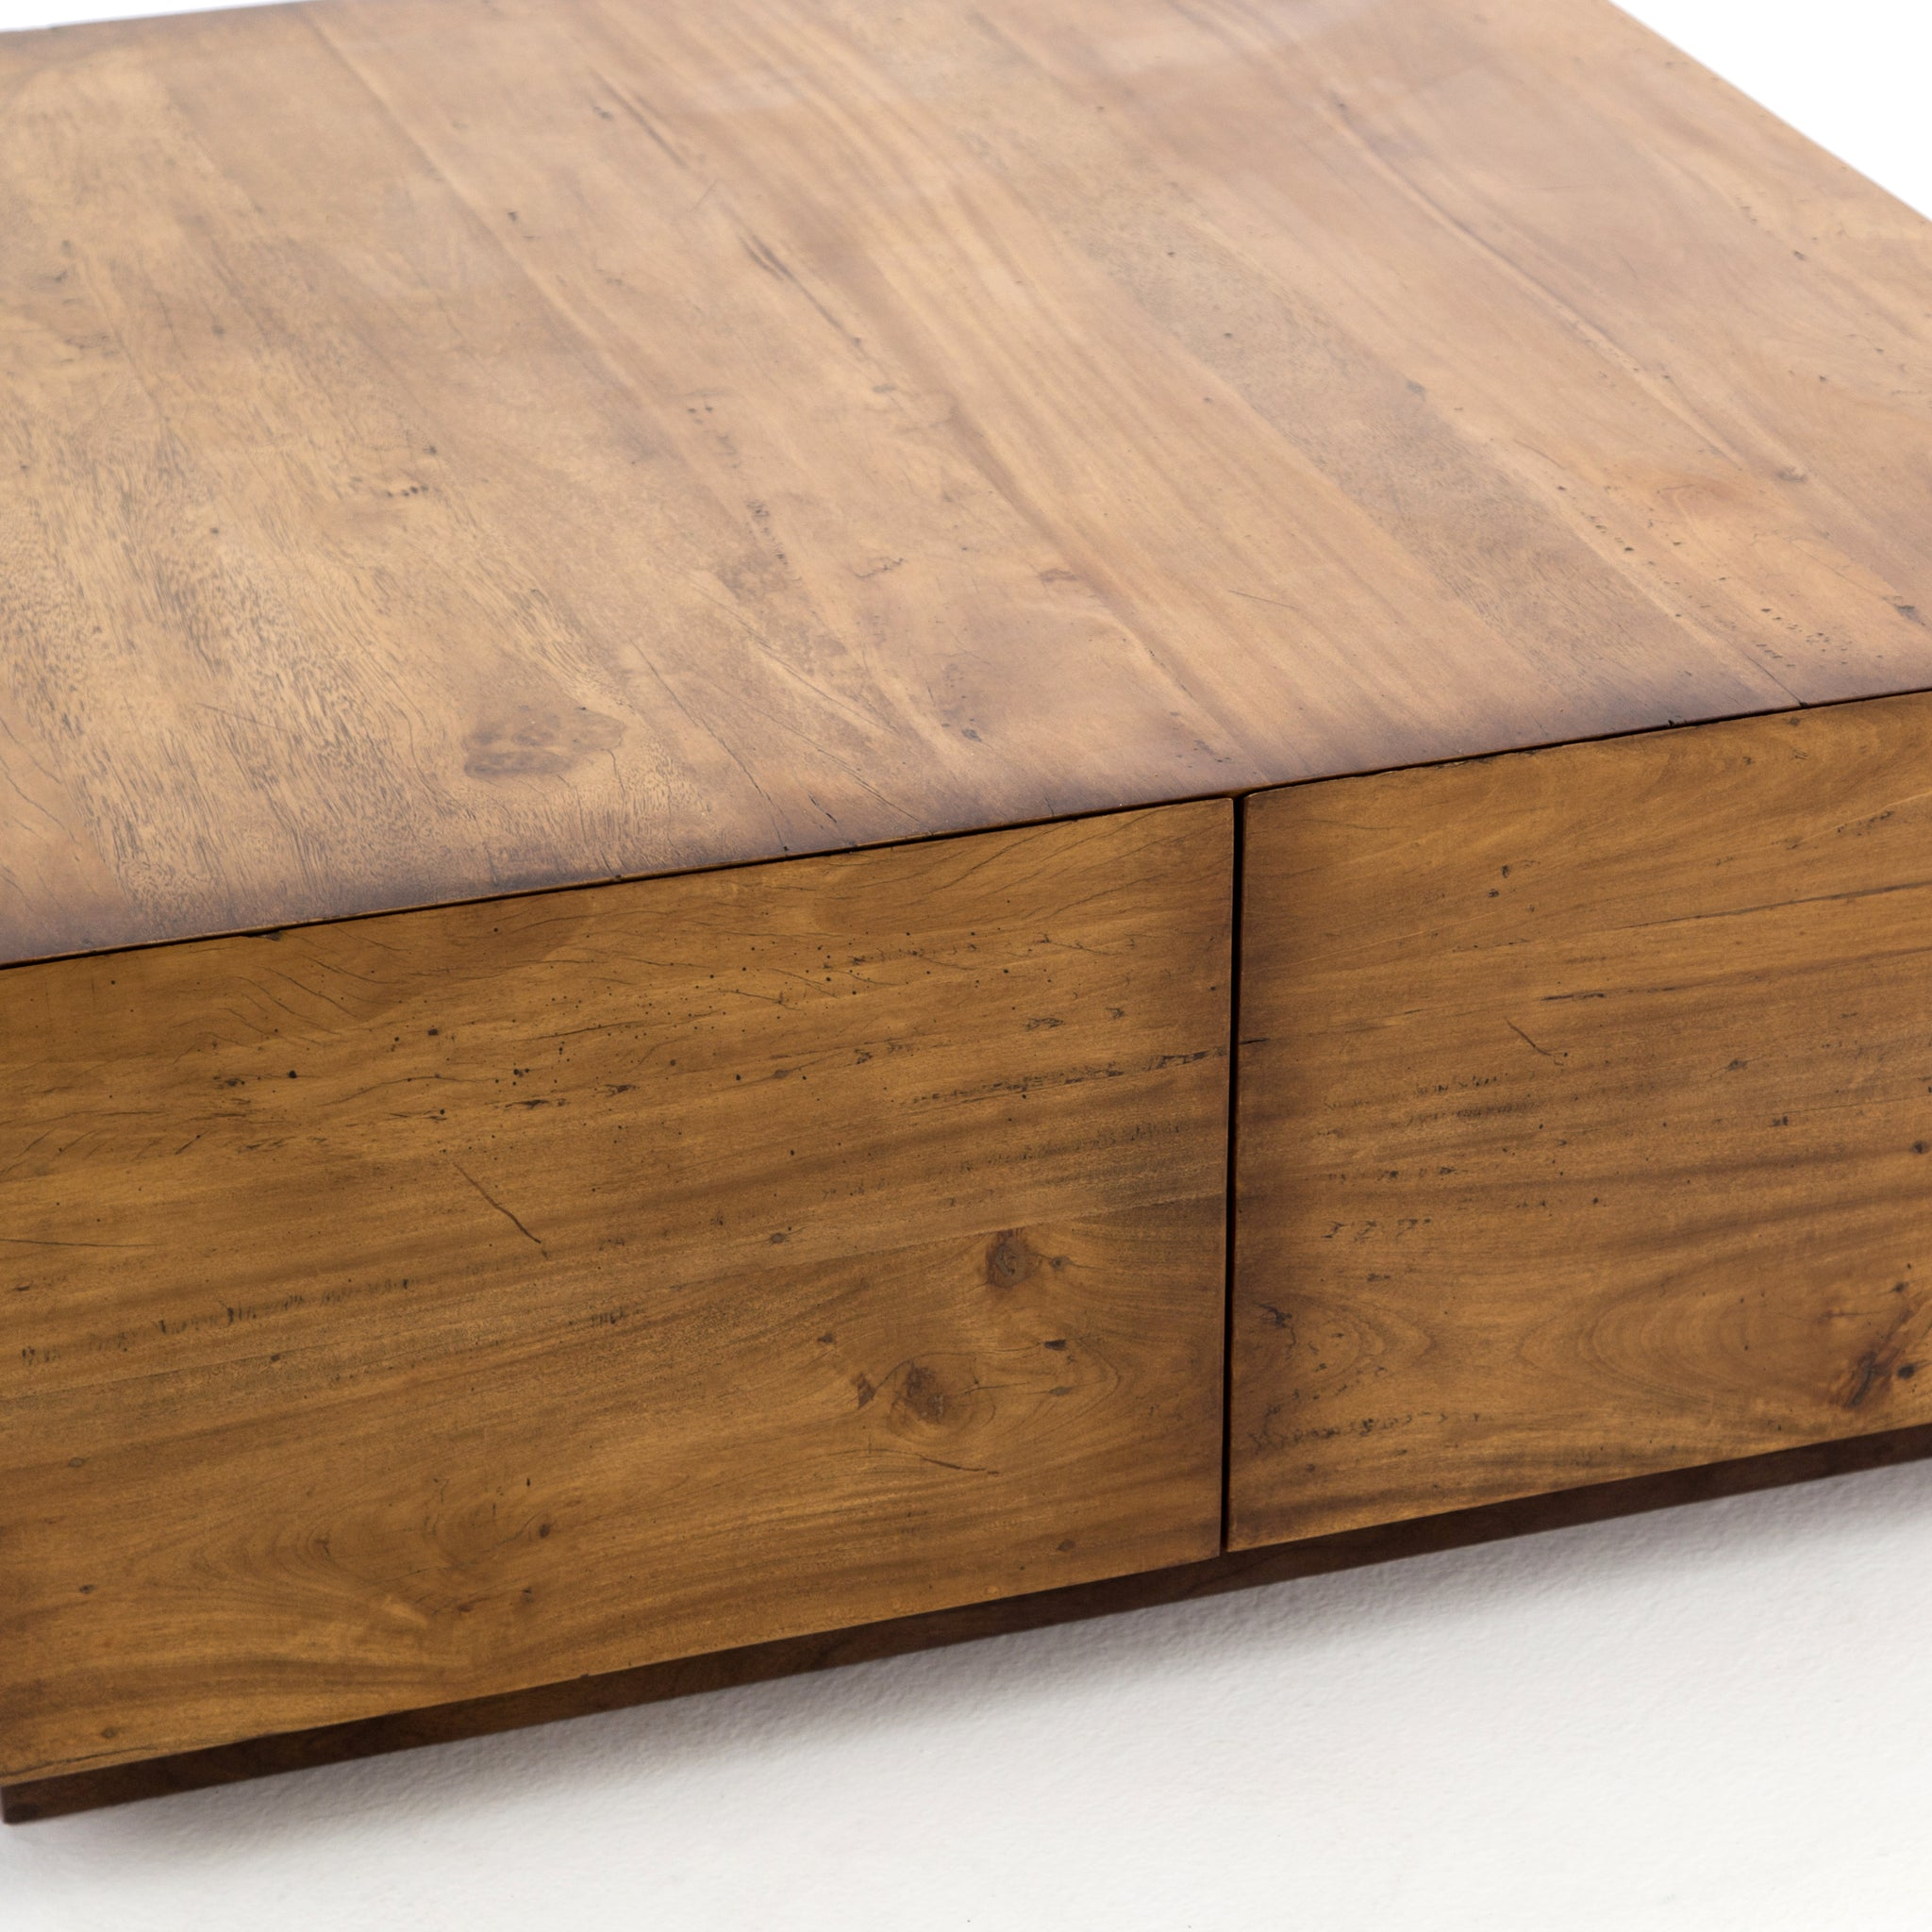 Duncan Storage Coffee Table: Duncan Storage Coffee Table In Reclaimed Fruitwood